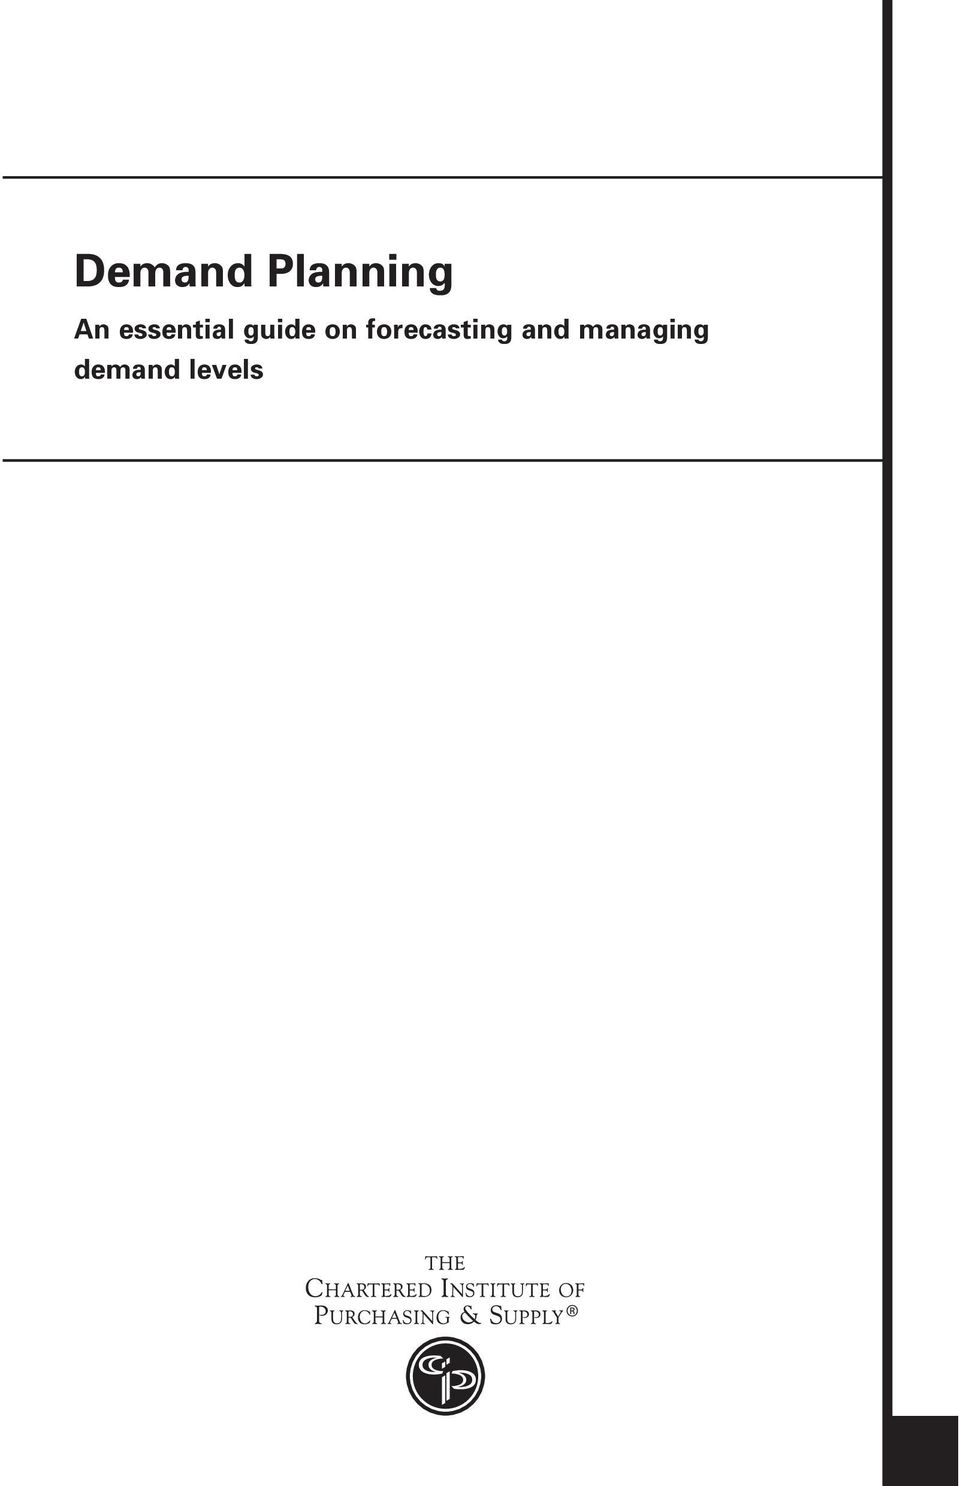 Demand planning  A professional guide on forecasting and